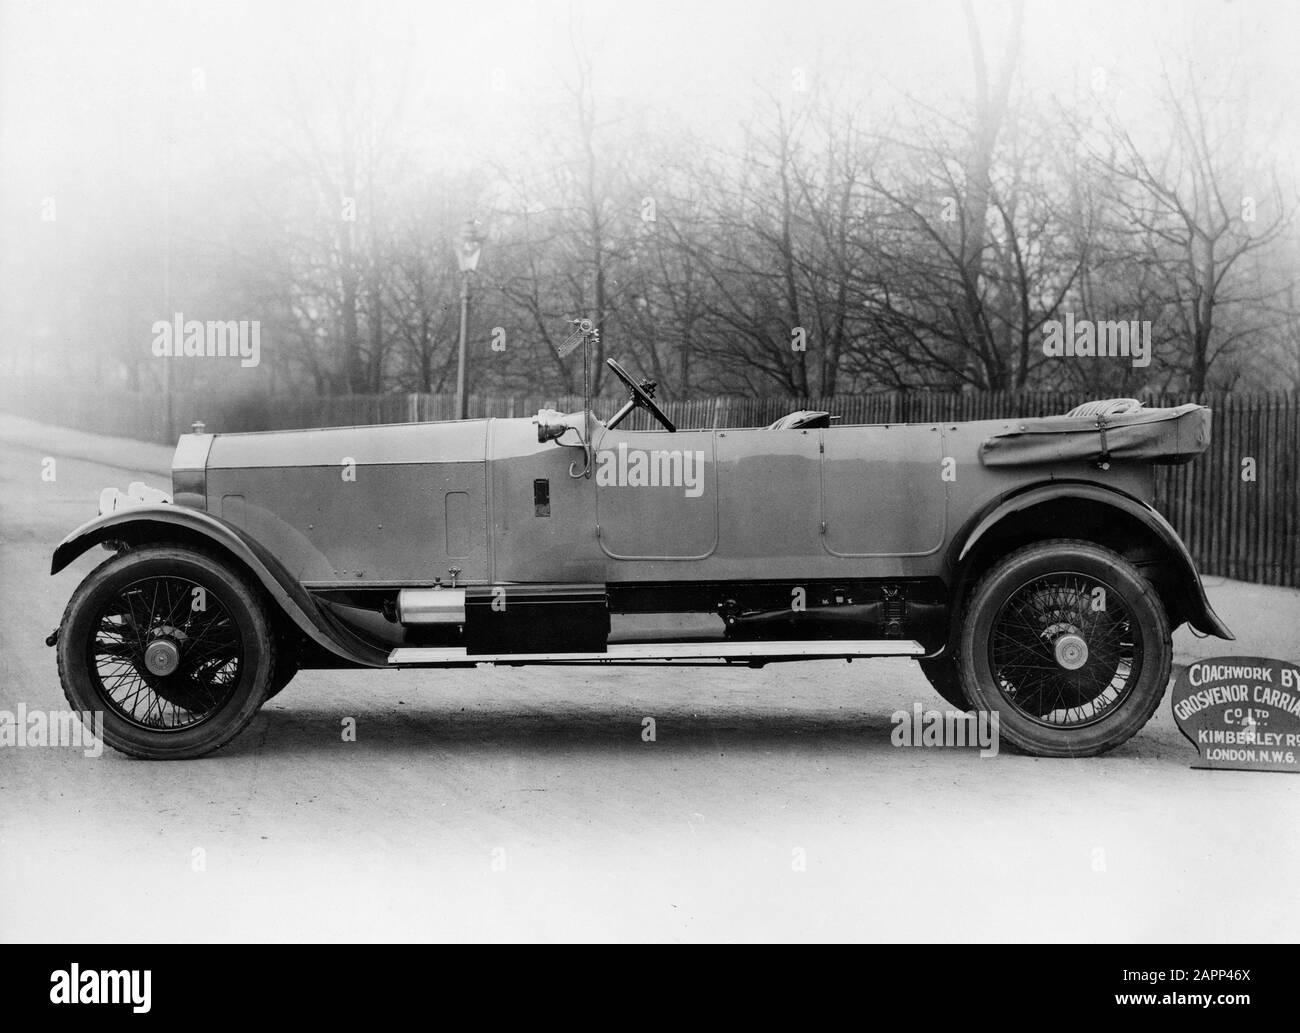 Vintage Rolls Royce Black and White Stock Photos & Images - Alamy